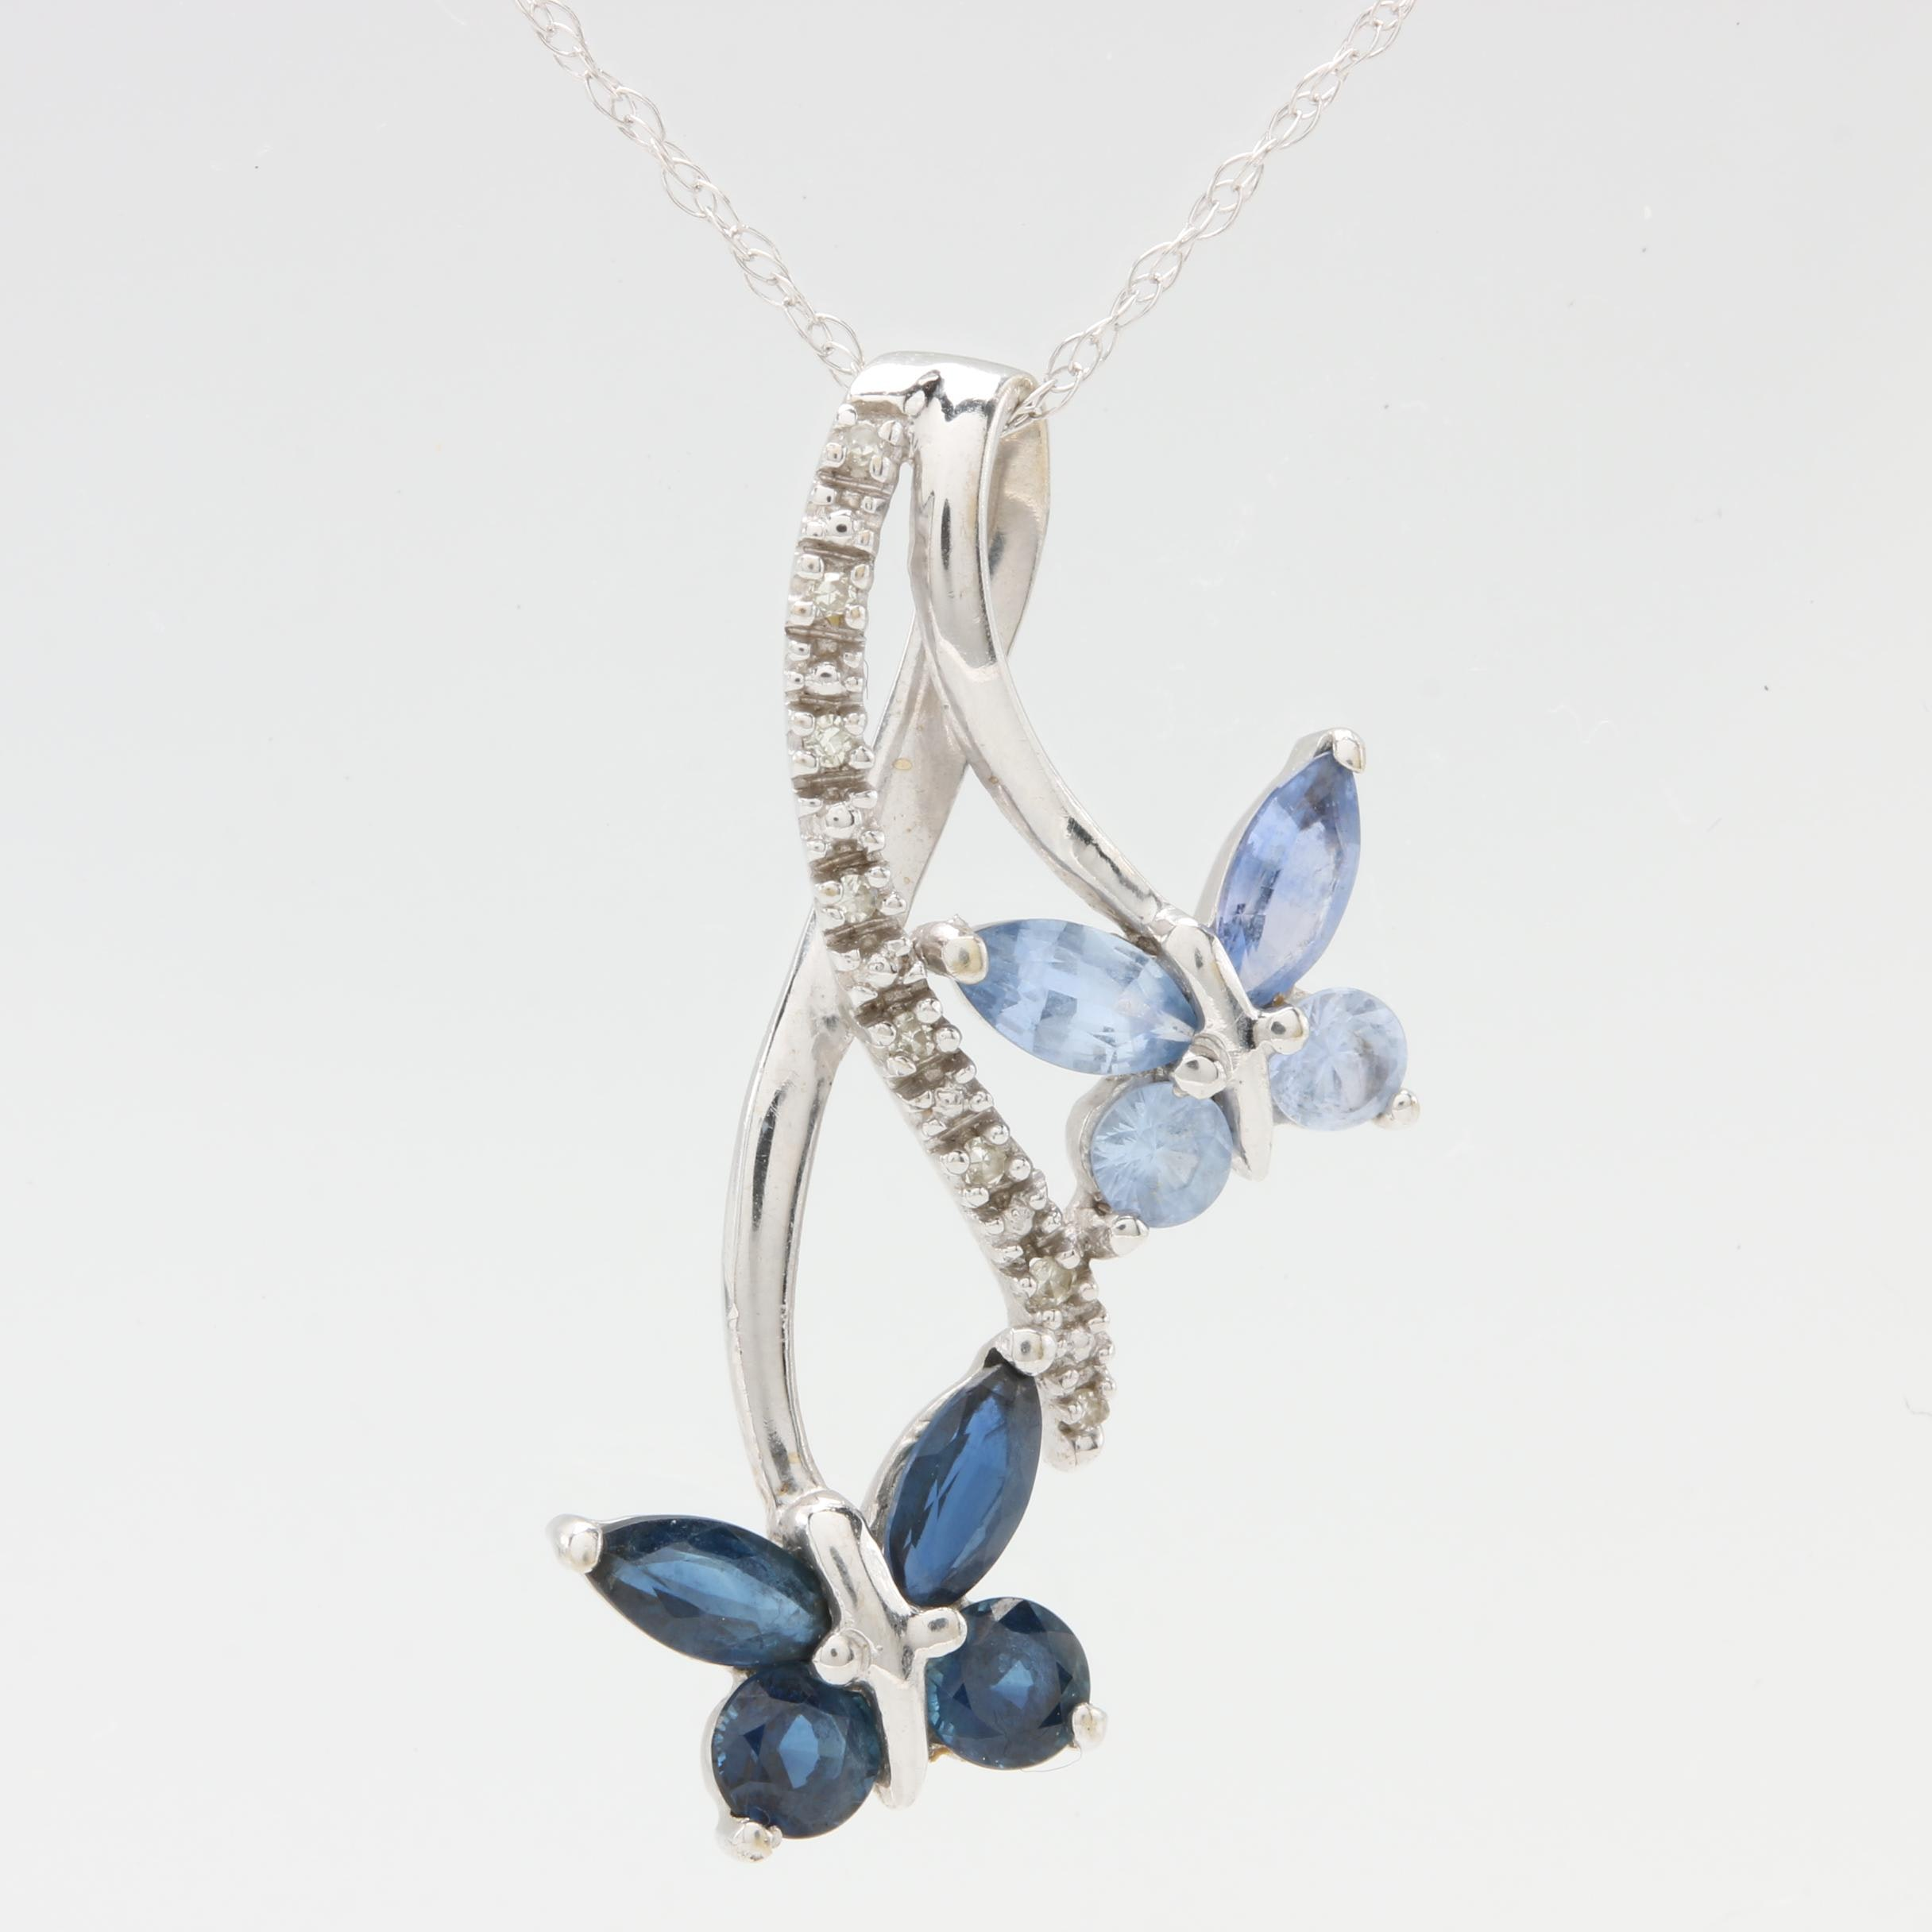 10K and 14K White Gold Blue Sapphire and Diamond Pendant Necklace